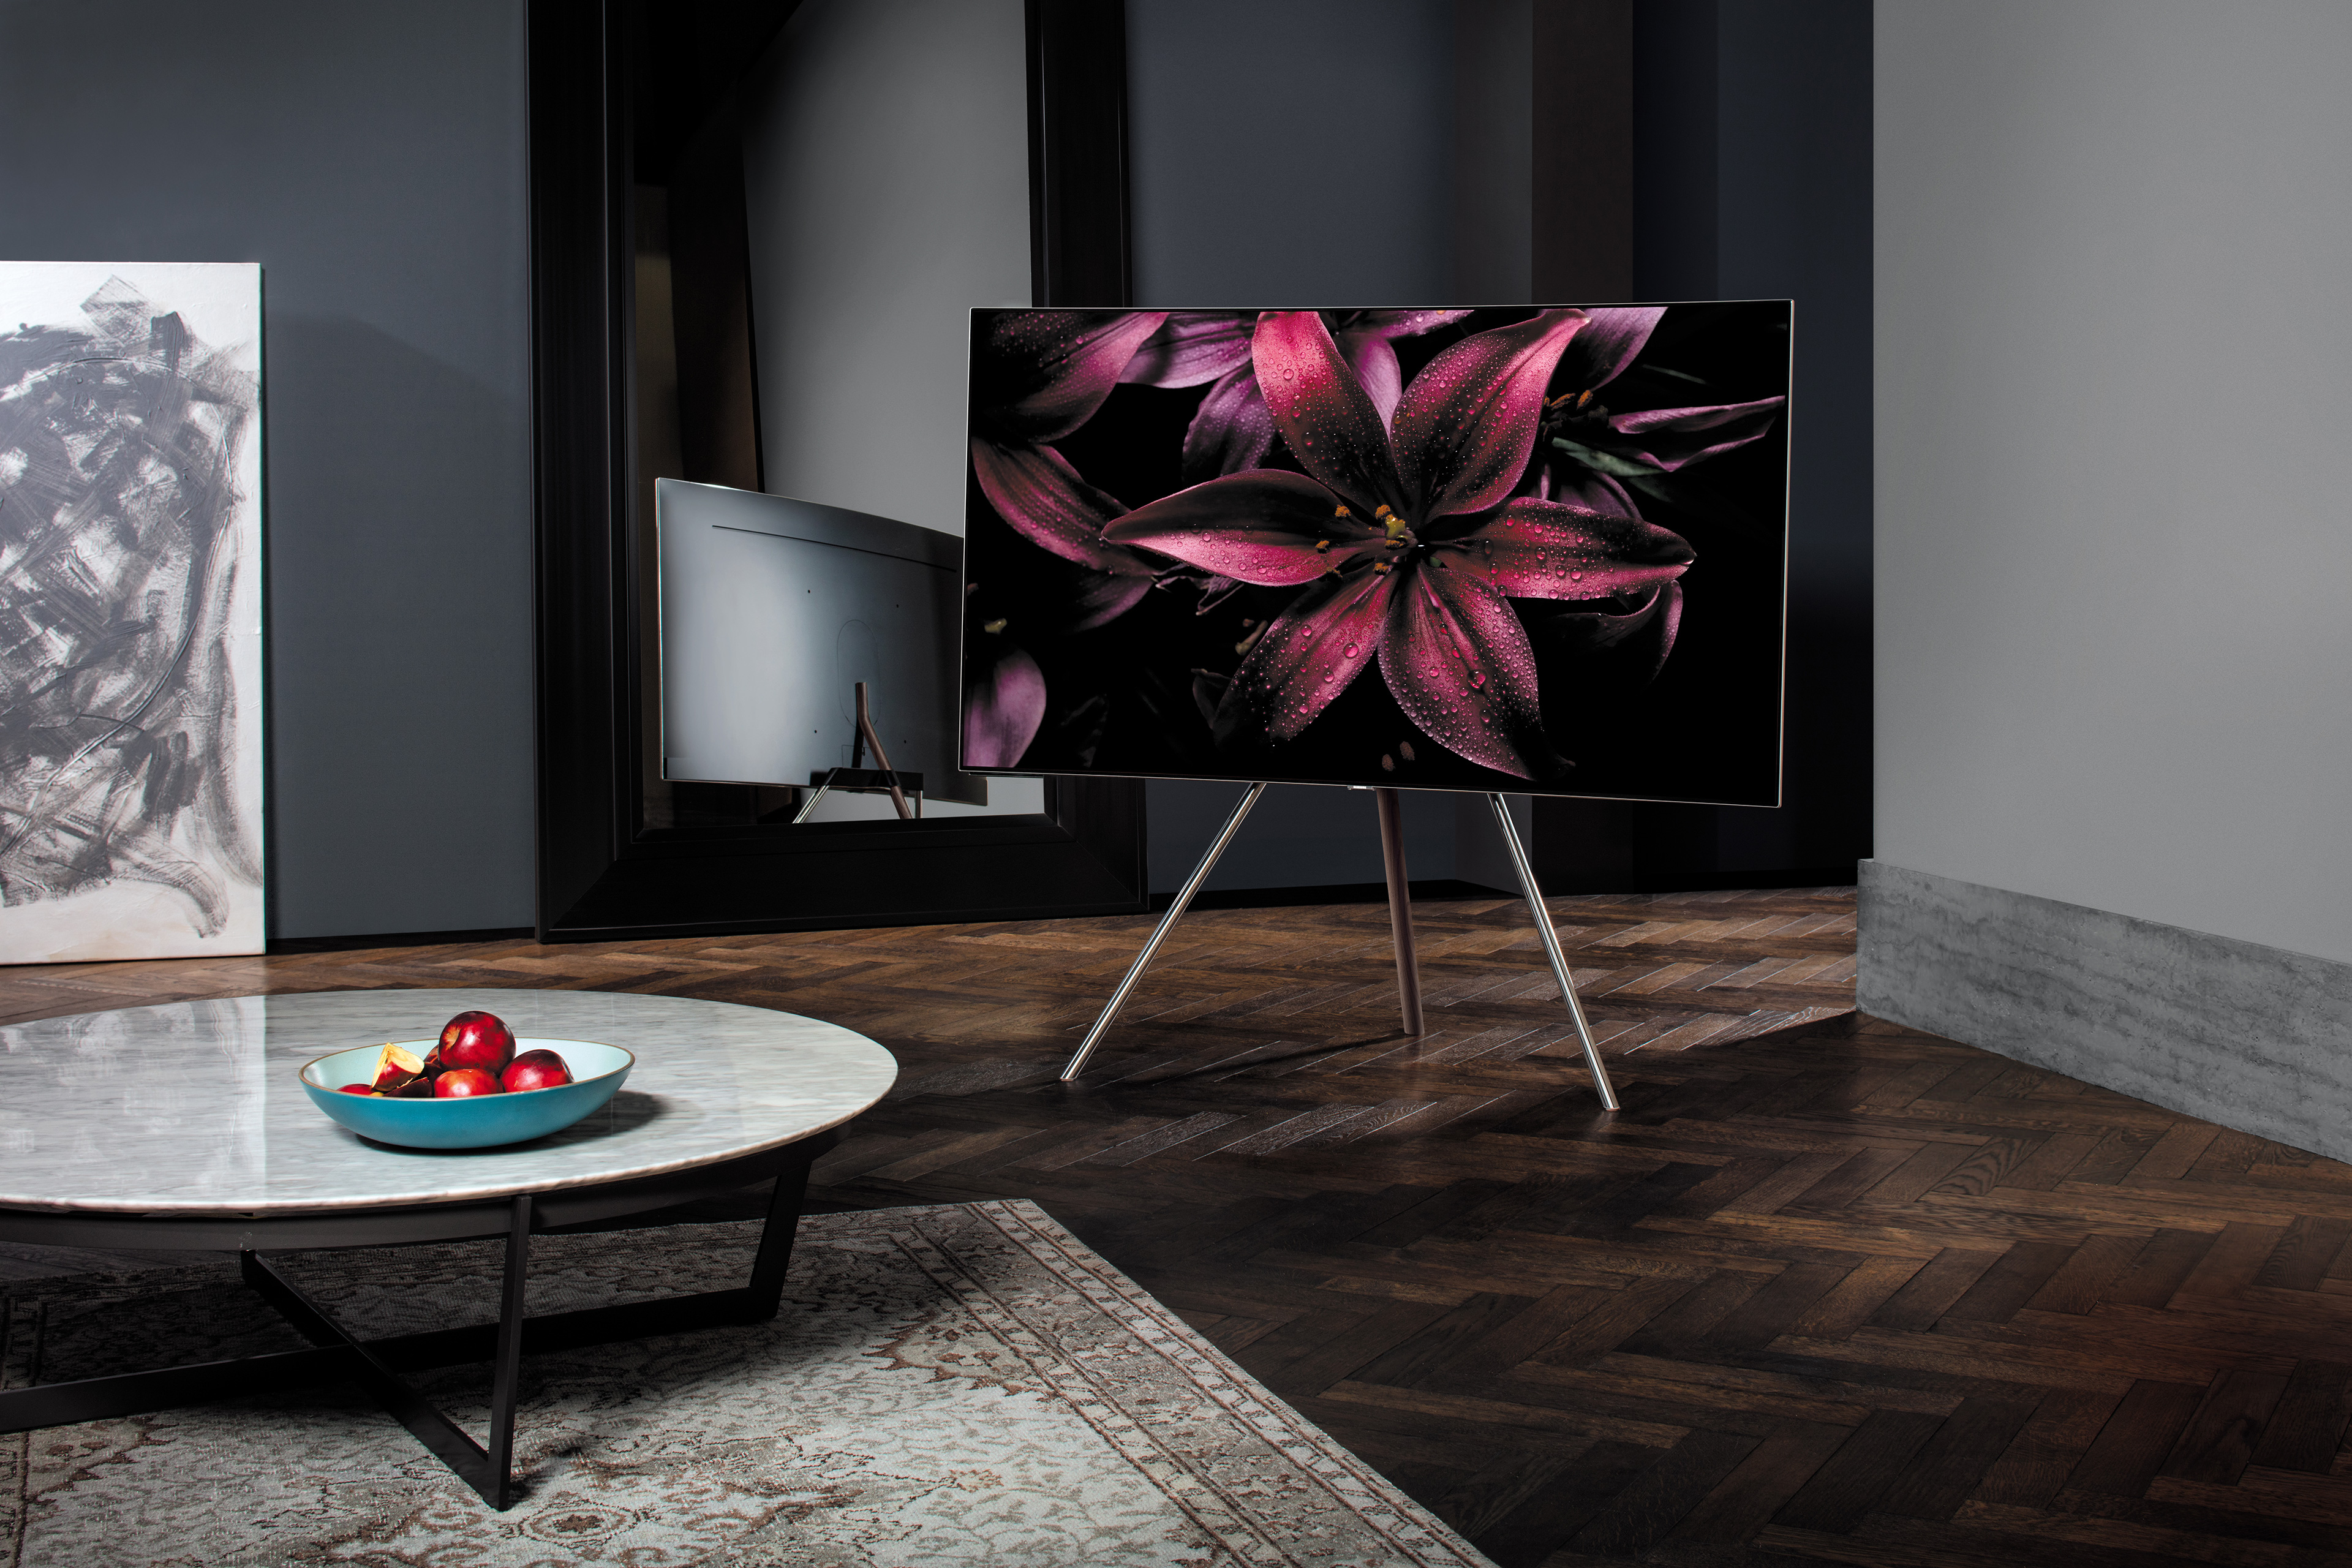 CES 2017: Samsung Debuts QLED TV With Best-Looking Picture